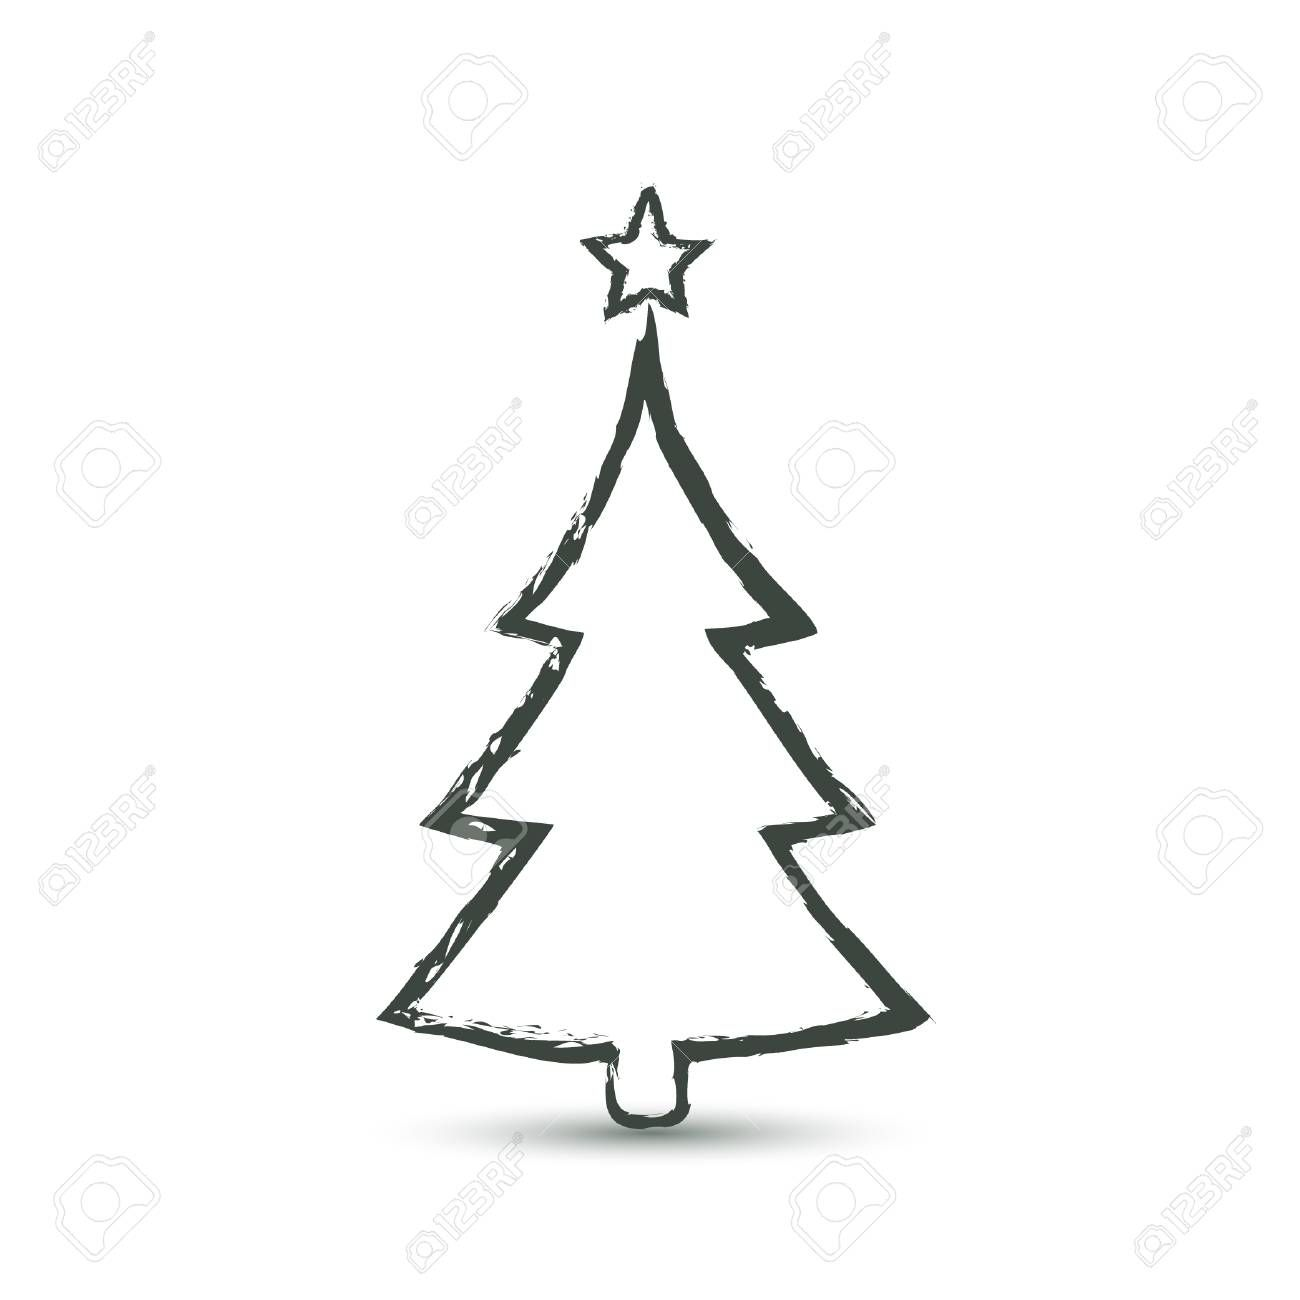 Christmas Trees Icon In Grunge Style Vector Simple Design Simple Christmas Tree Clipart Black And Whi In 2020 Christmas Tree Clipart Simple Christmas Tree Tree Icon